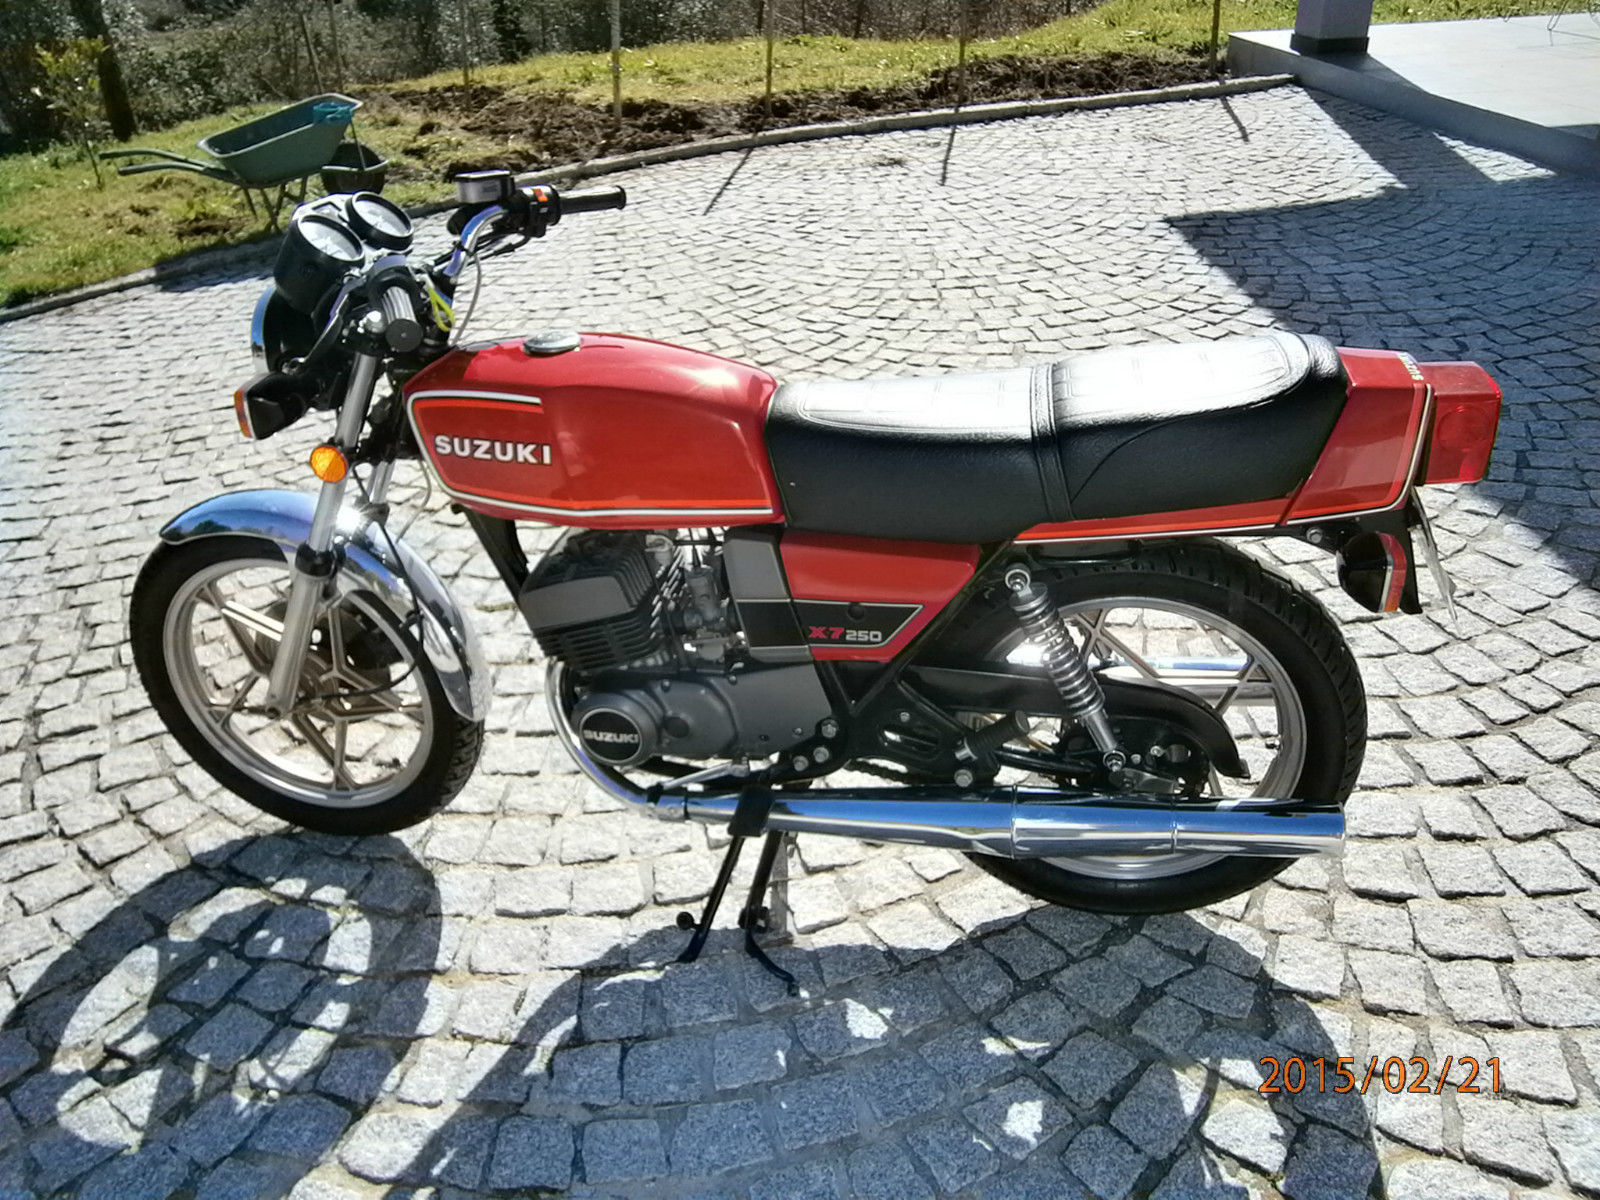 Suzuki X7 - 1982 - Left Side View, Gold Wheels, New Style Indicators,